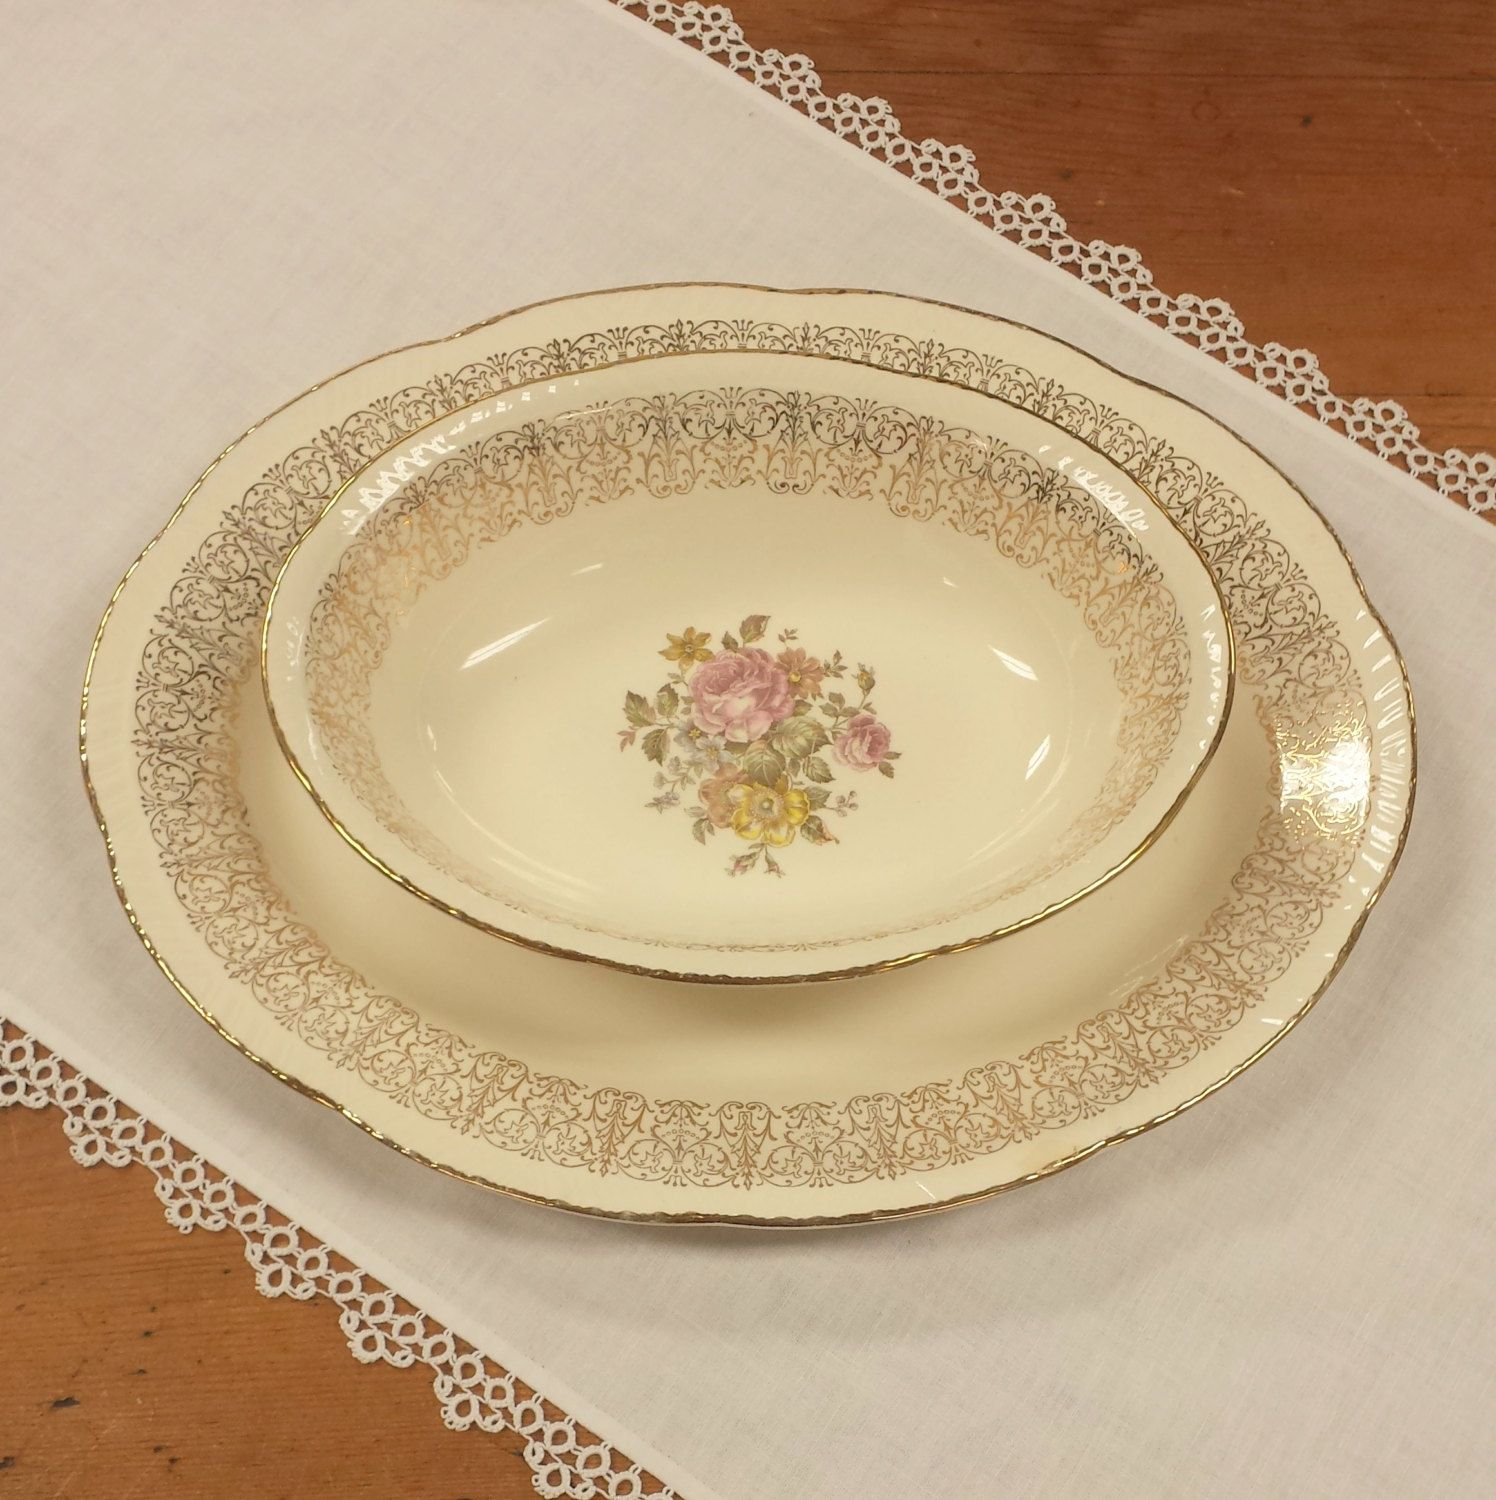 Oval Serving Dishes ~ Monticello Dinnerware by Homer Laughlin ~ Platter Vegetable Server Bowl Replacement China by FeeneyFinds on Etsy & Reserved: Oval Serving Dishes ~ Monticello Dinnerware by Homer ...